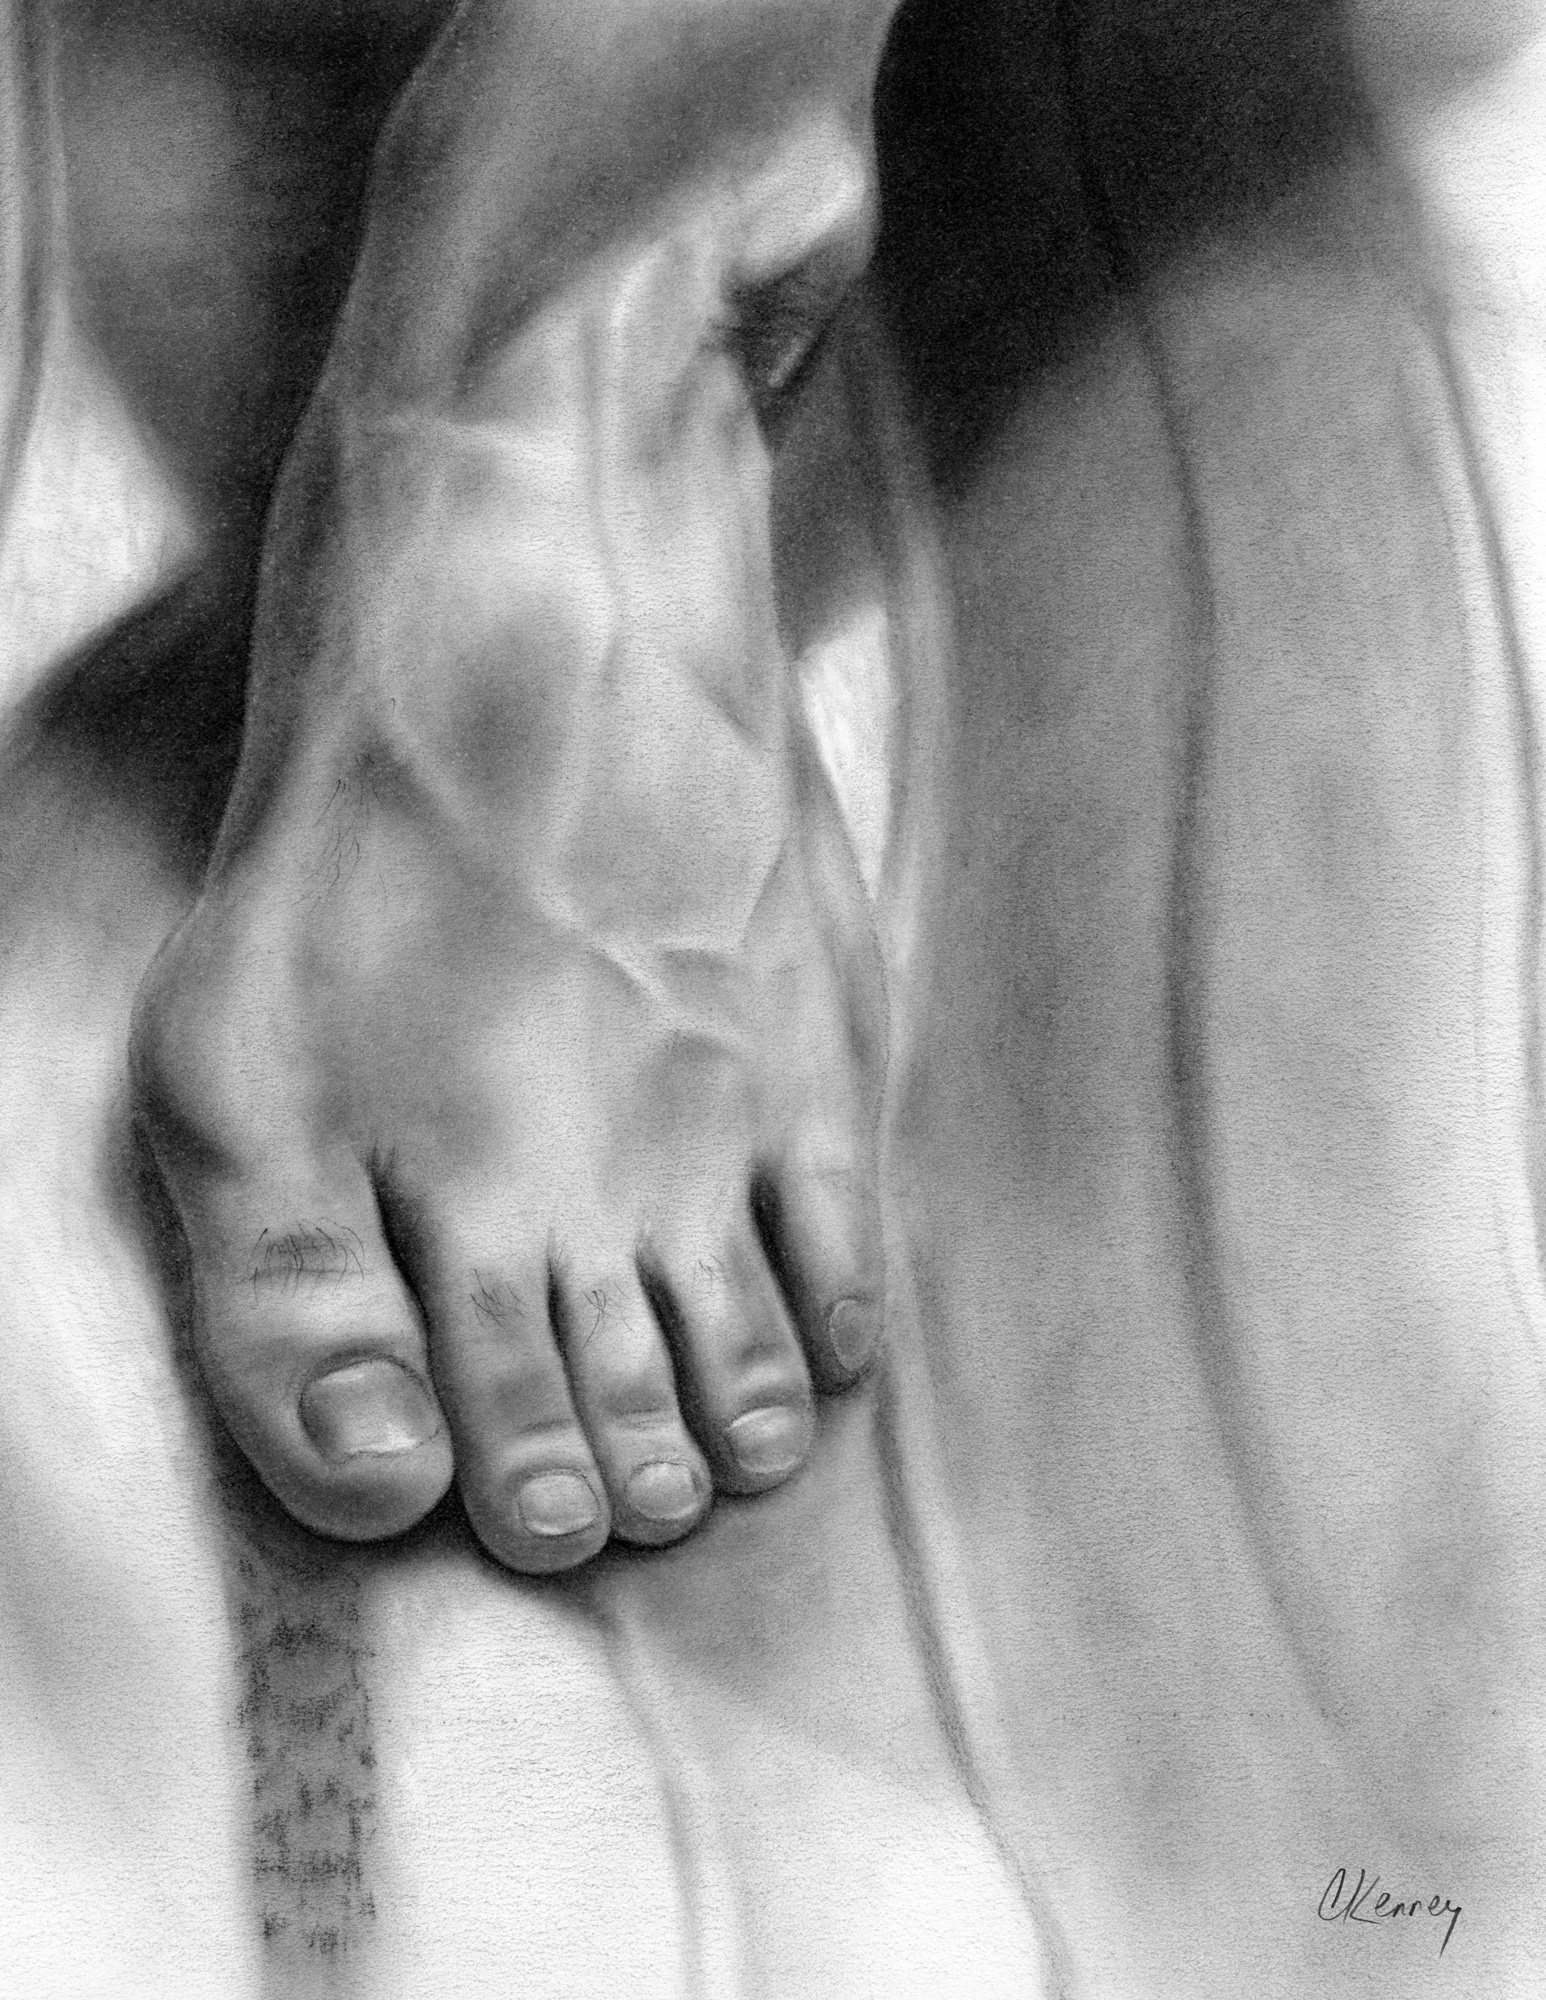 Hallux valgus foot illustration in carbon dust